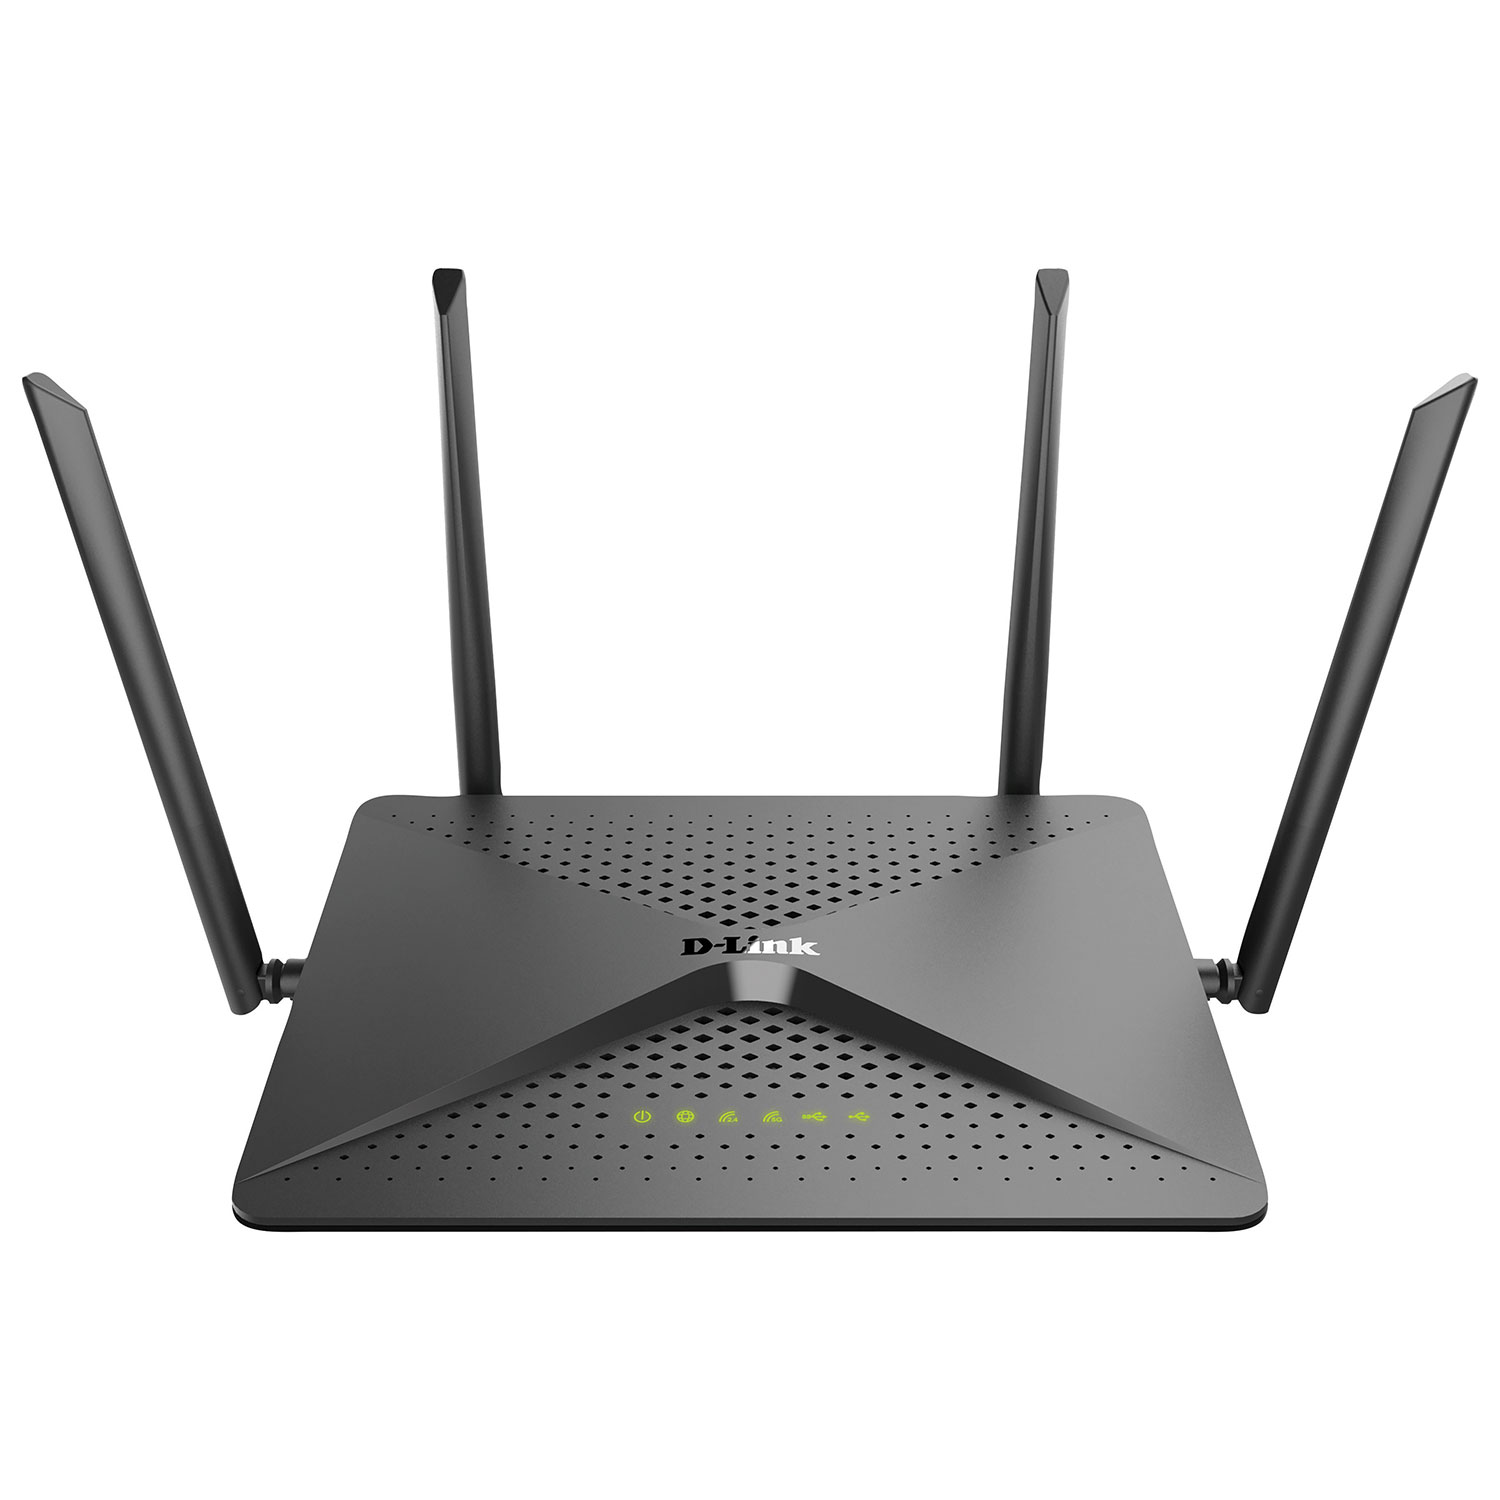 Wireless Routers Single Dual Tri Band Best Buy Canada Linksys E2500 Ap N600 Router D Link Ac2600 Gigabit